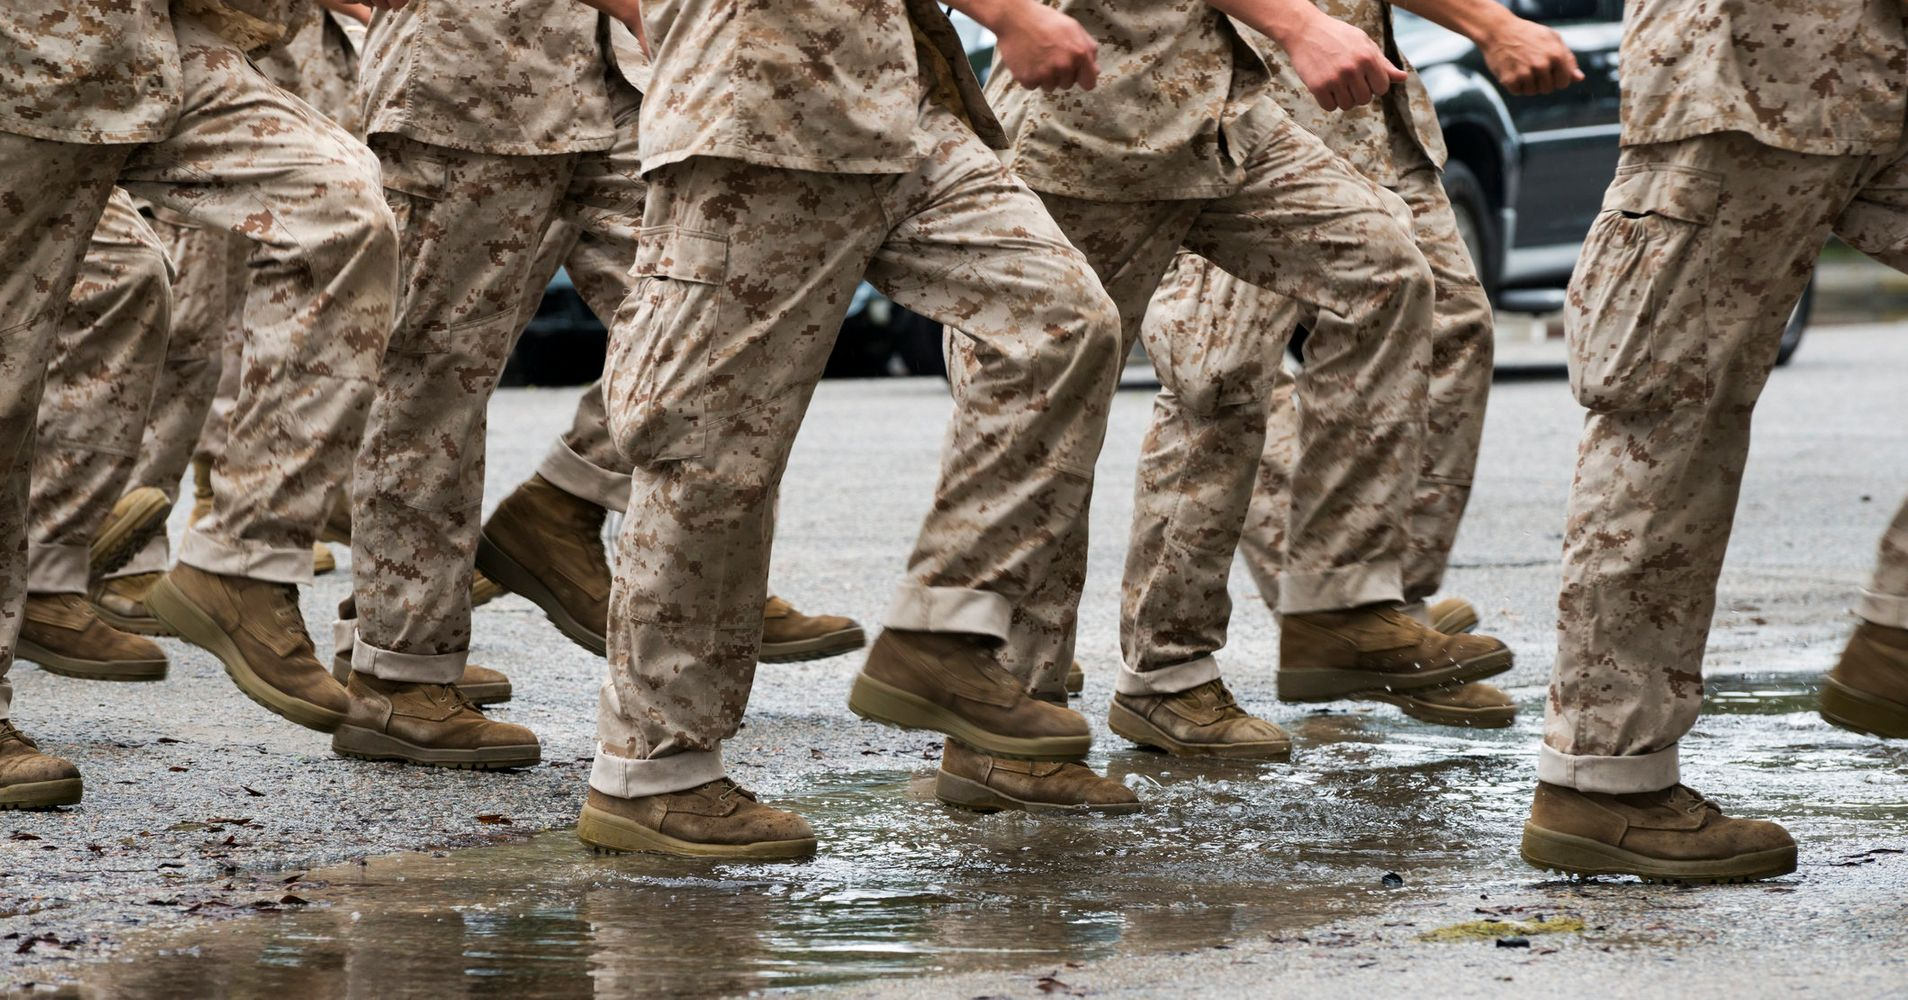 Nations top Marine speaks at Camp Lejeune, New River - WNCT